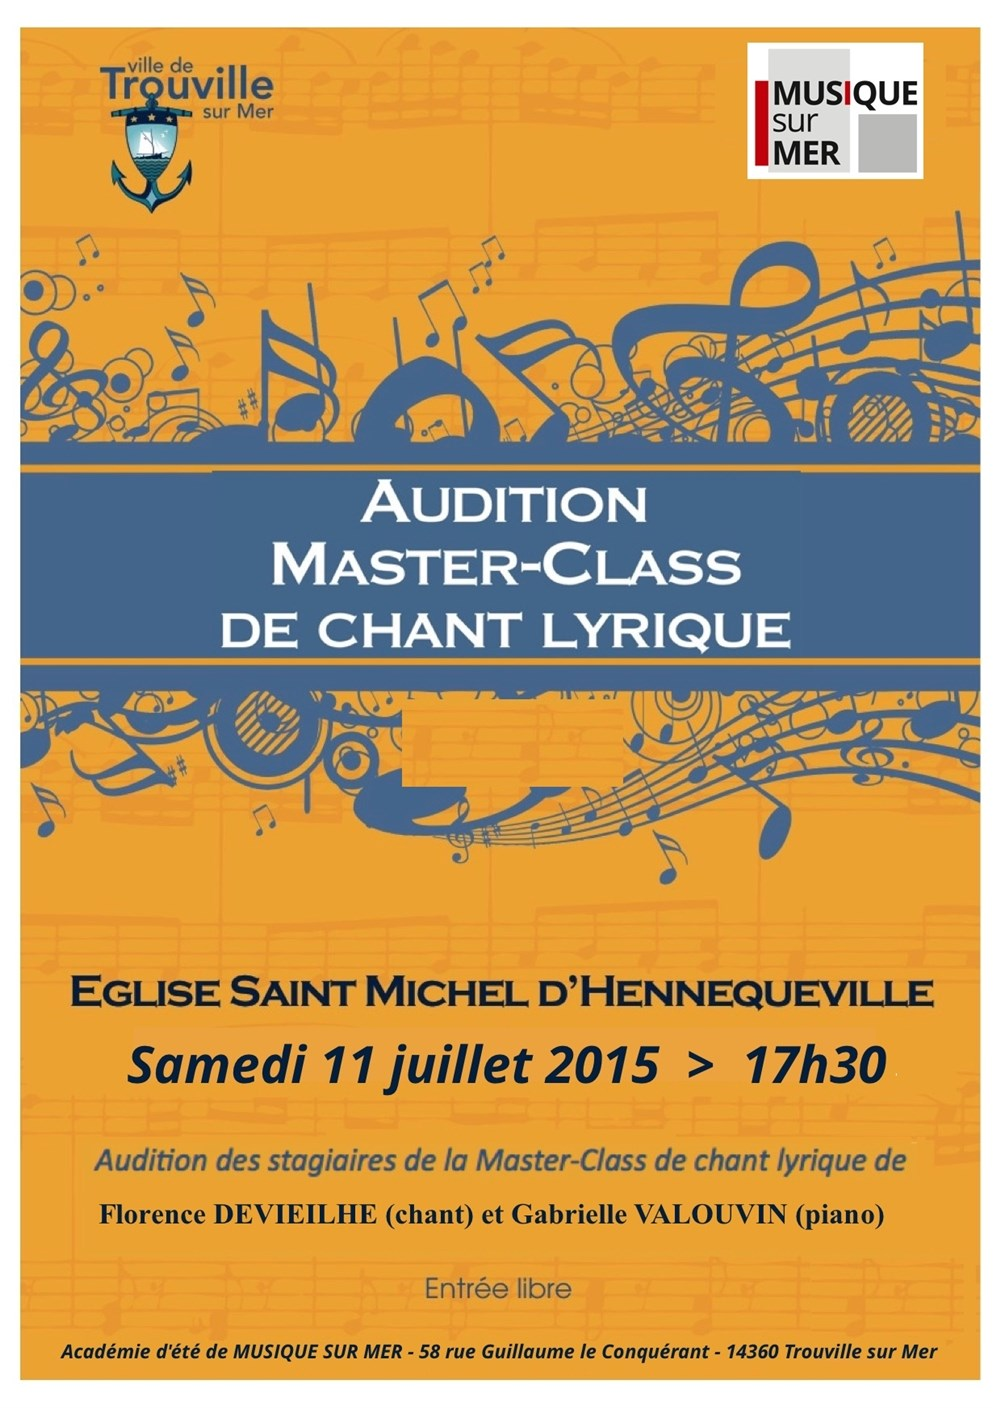 Audition de la master class de chant lyrique Trouville-sur-Mer